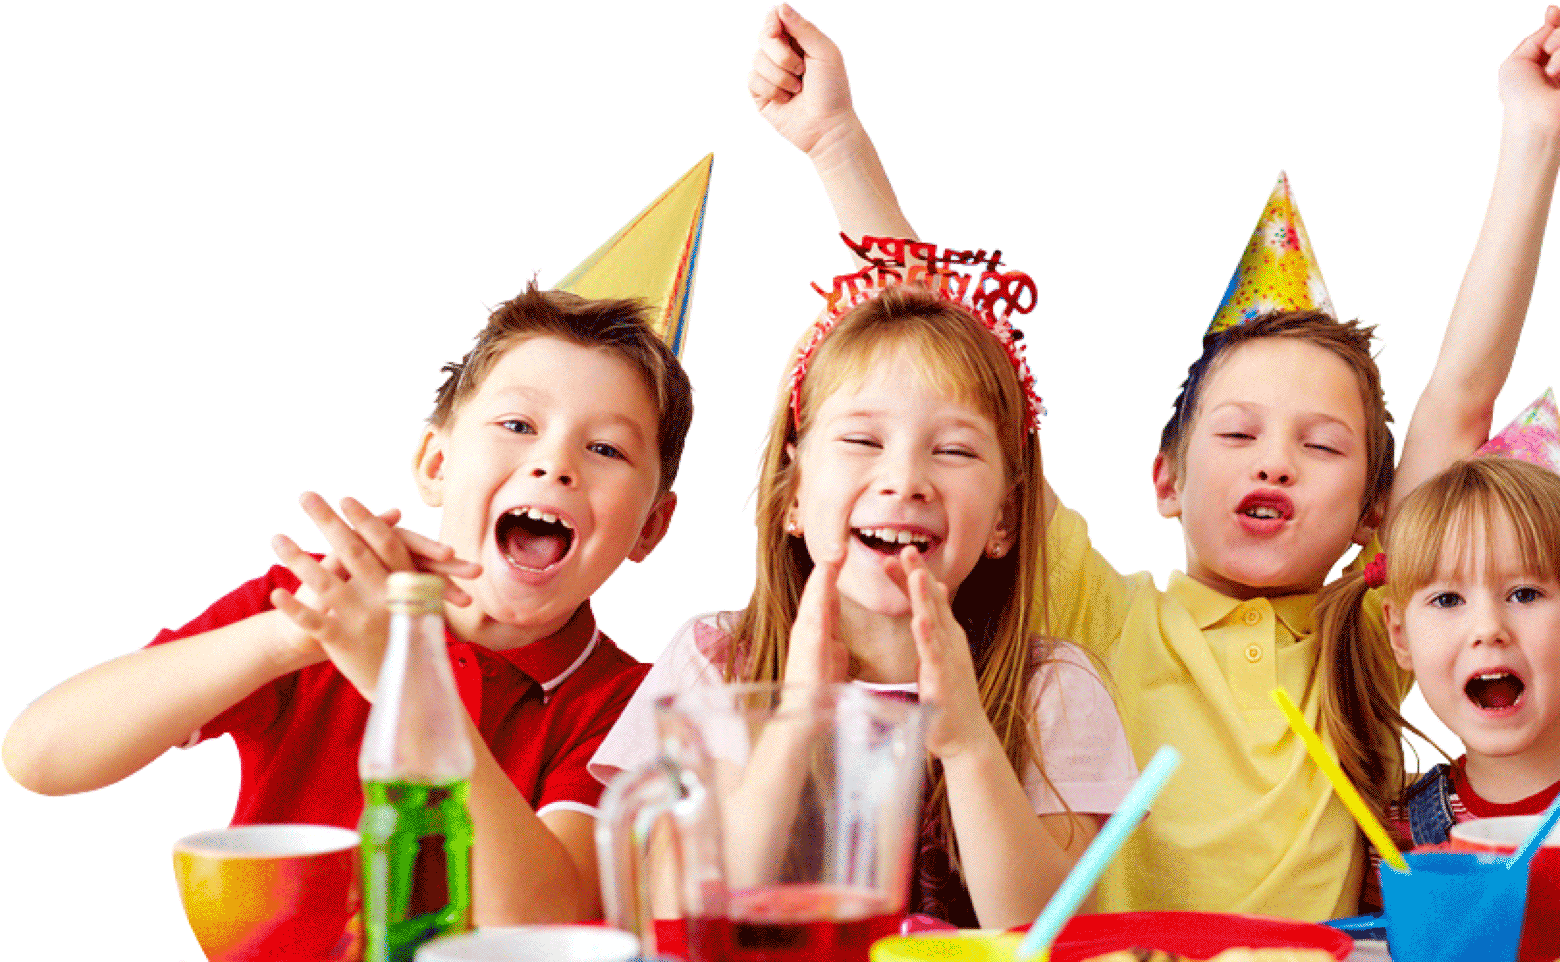 kids enjoying birthday party